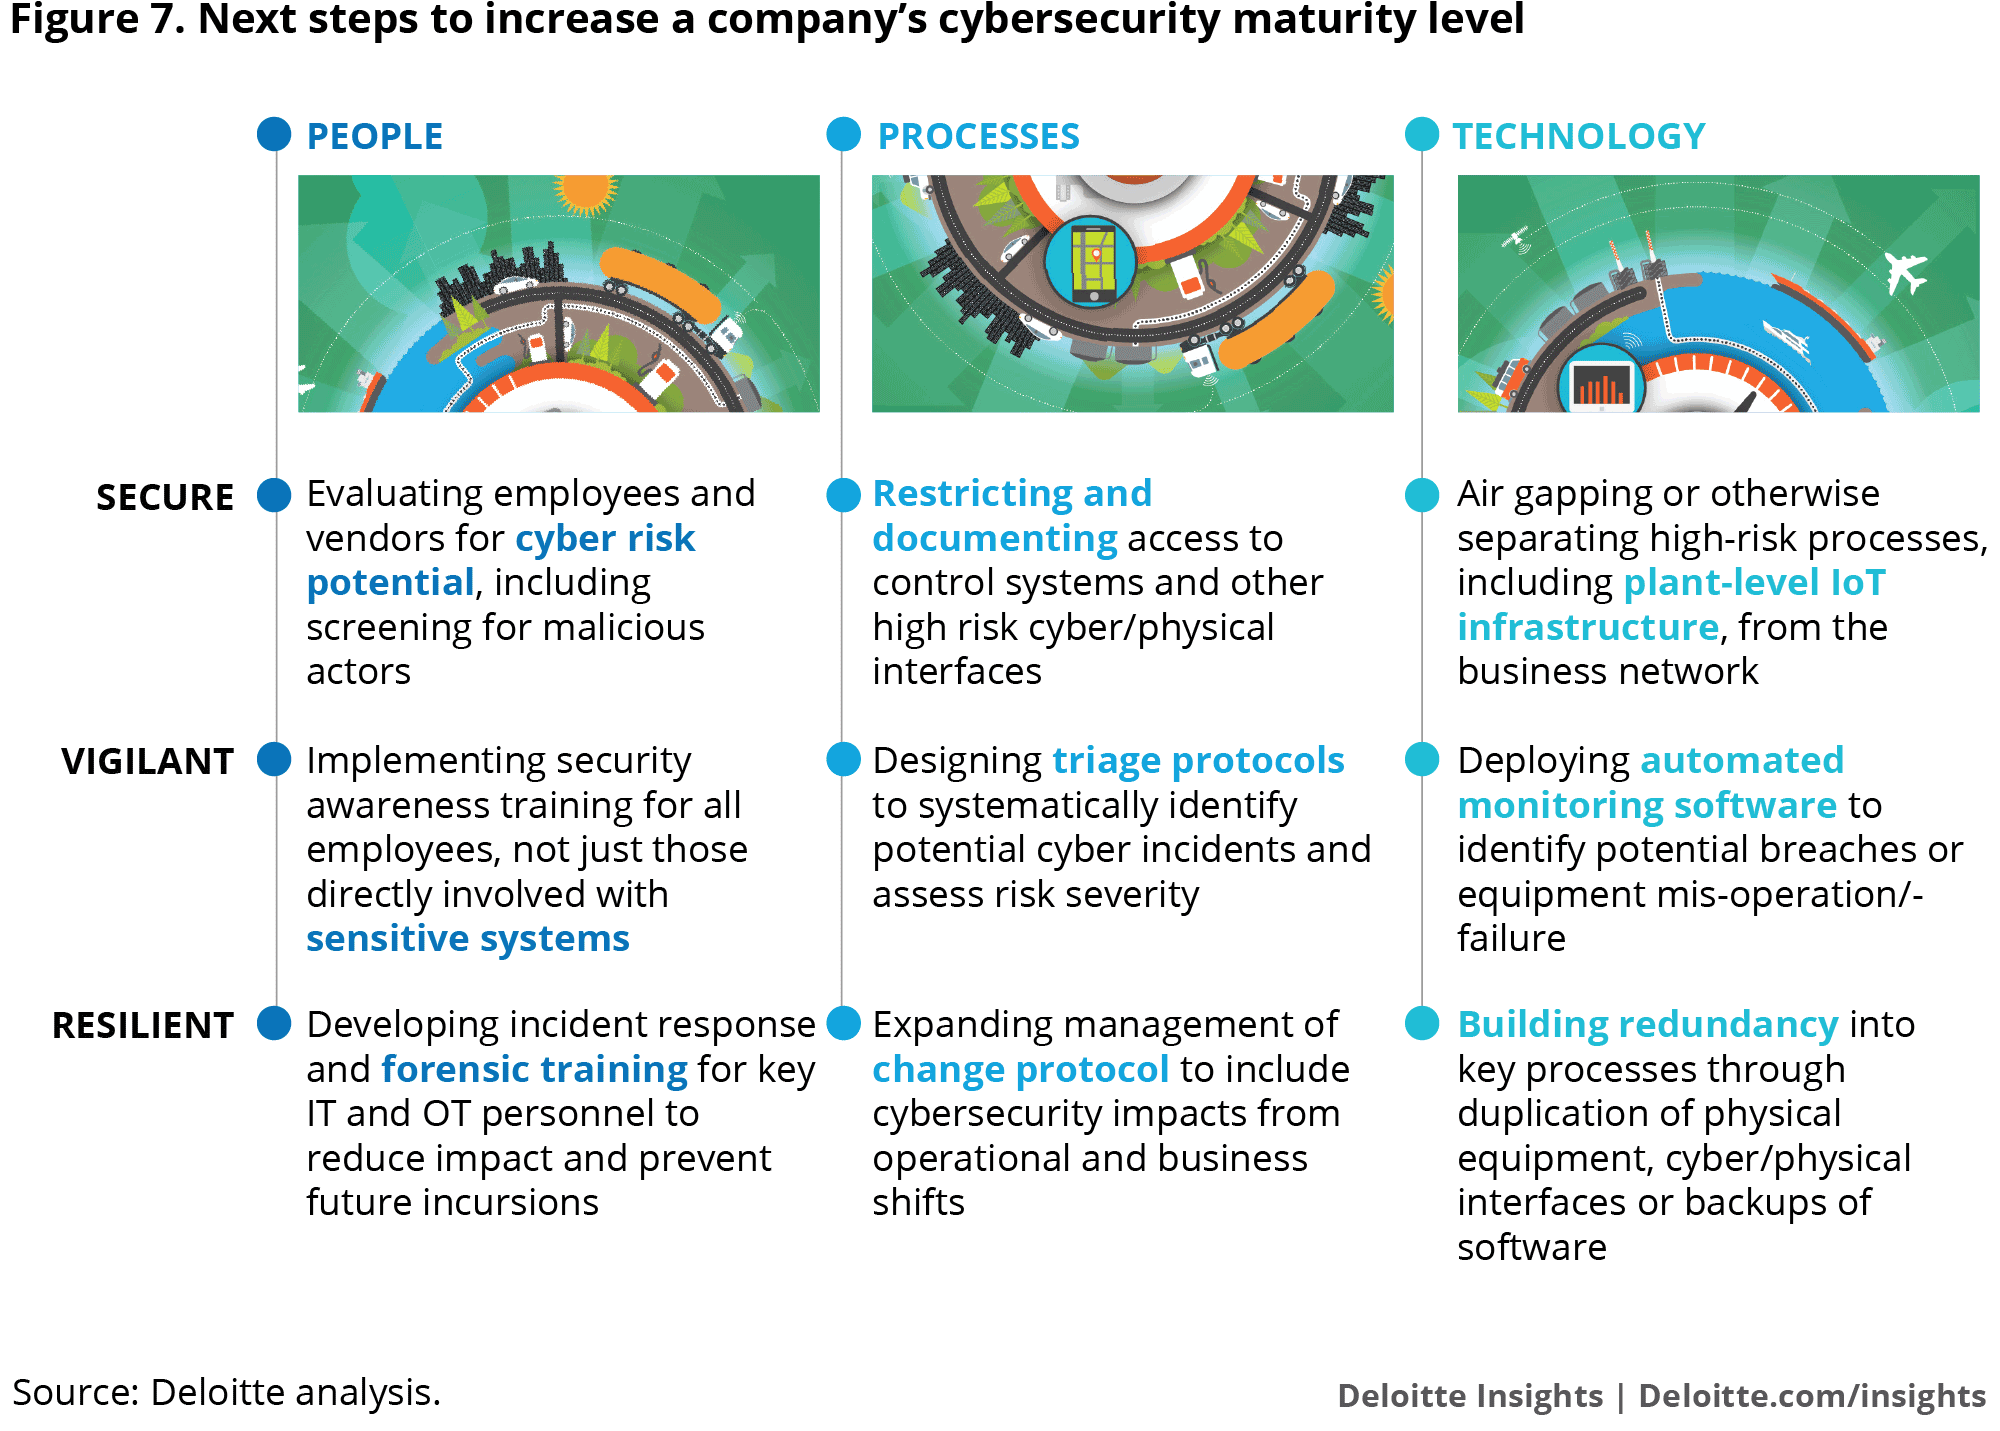 Figure 7. Next steps to increase a company's cyber maturity level